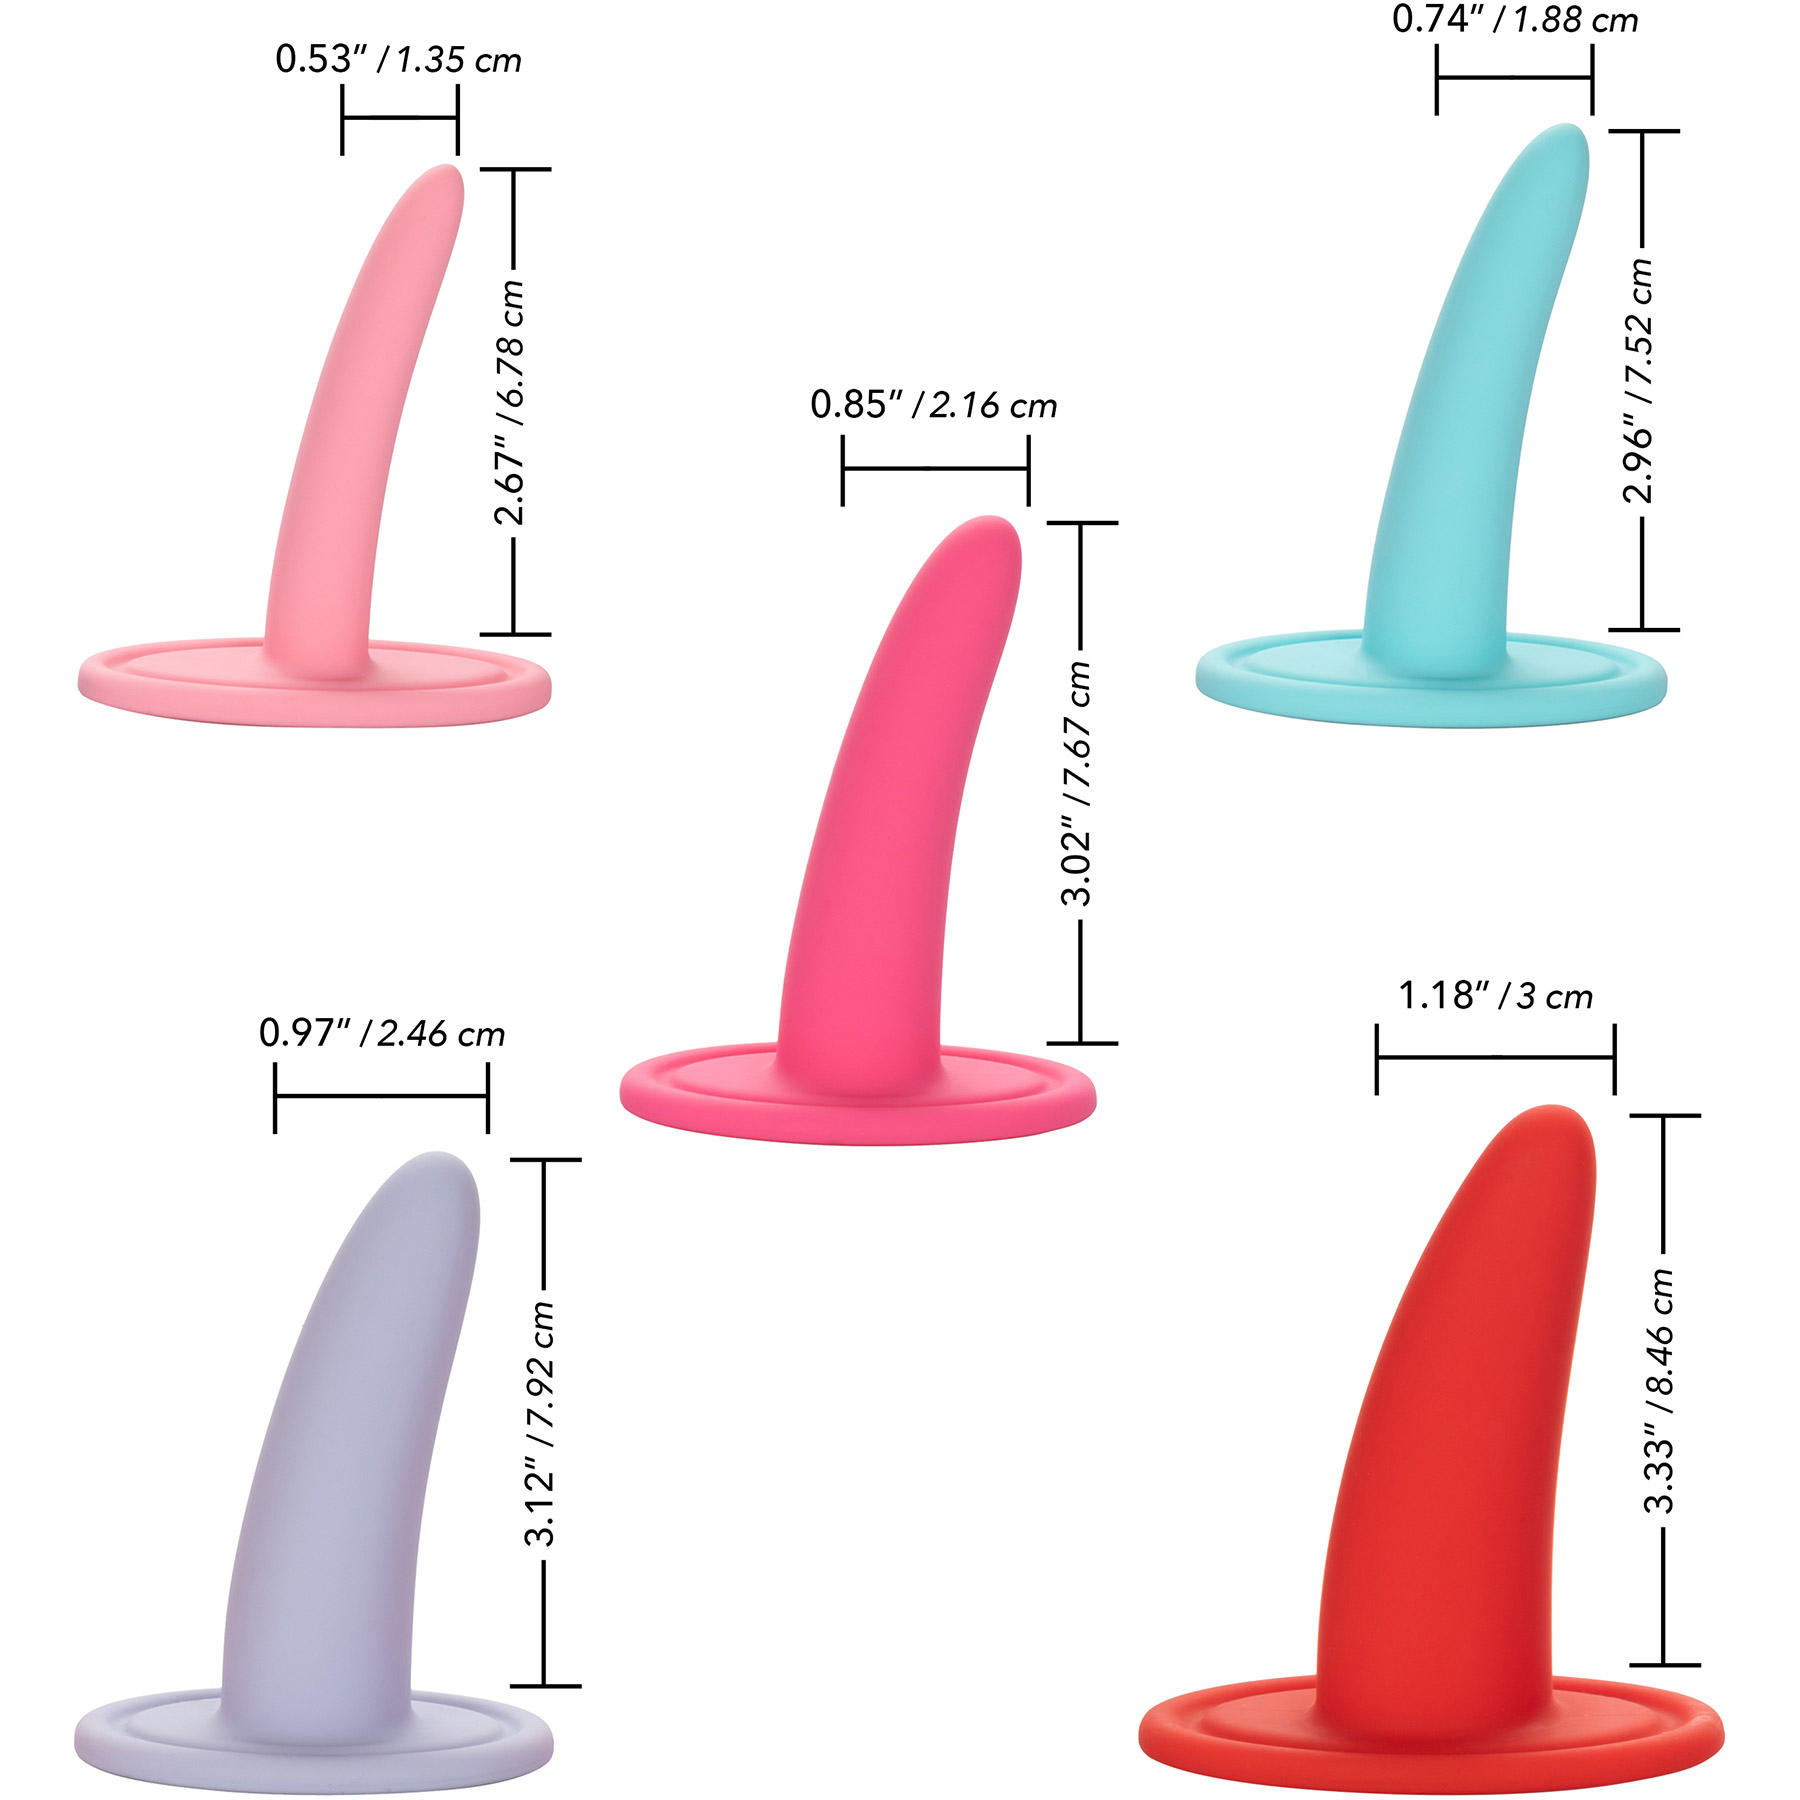 She-ology™ 5-Piece Wearable Vaginal Dilator Set - Measurements